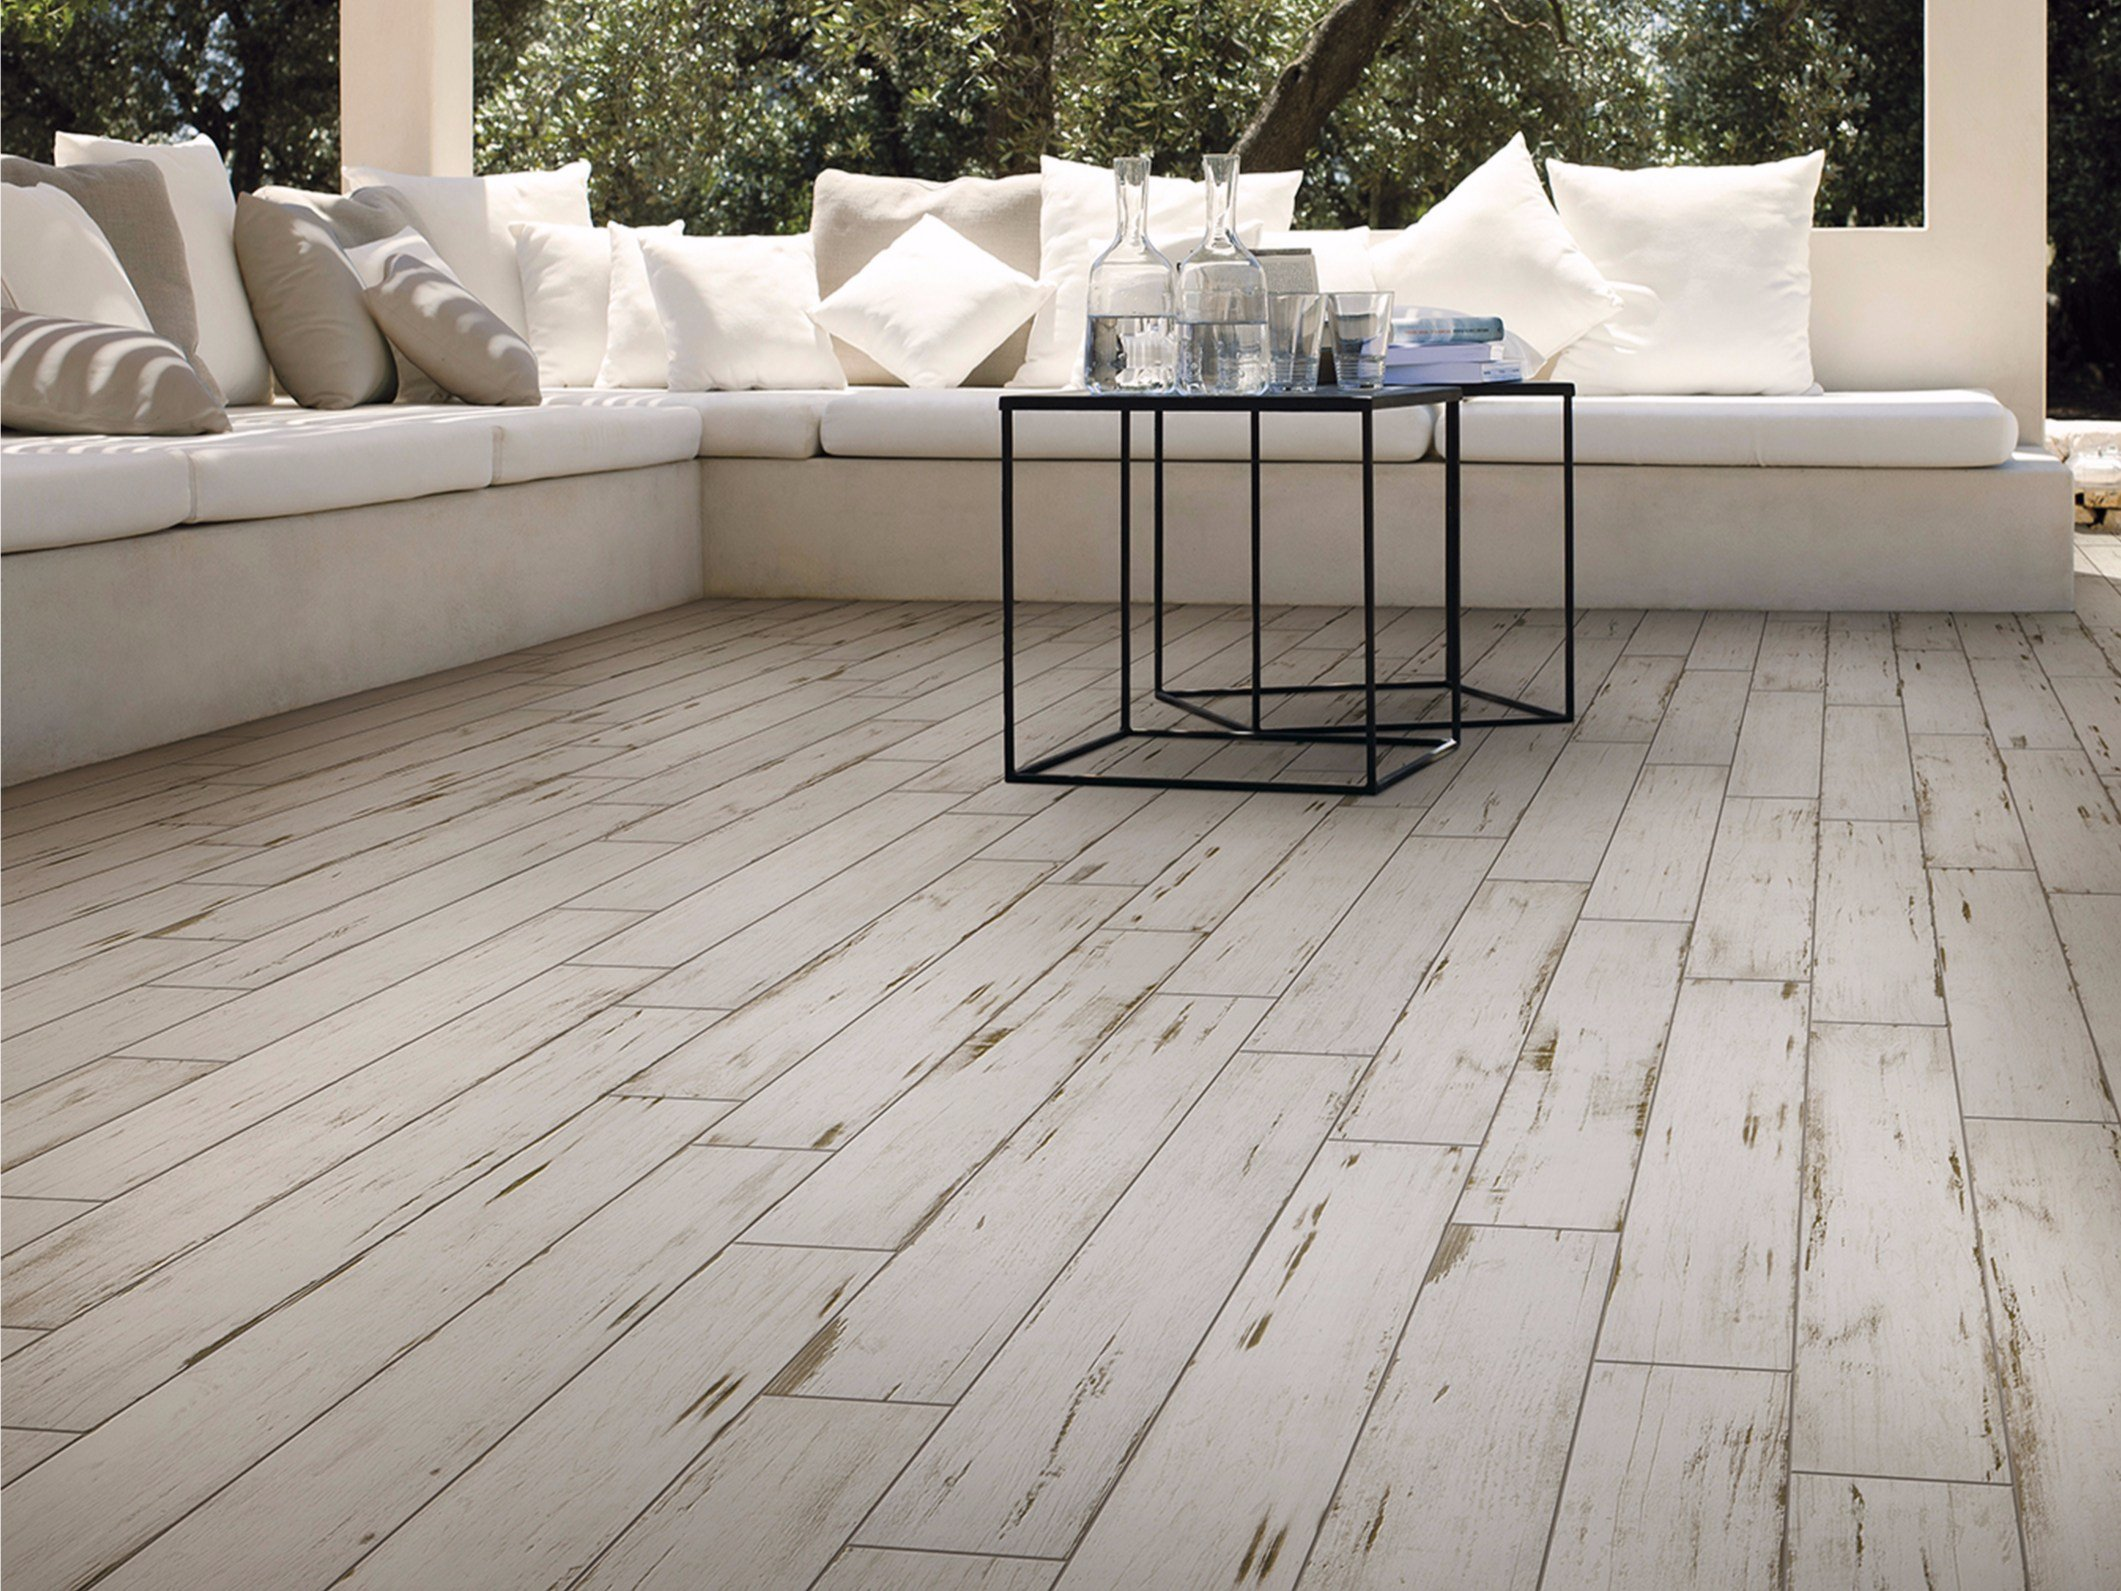 Porcelain stoneware wall floor tiles with wood effect painted by saime ceramiche for Finto parquet prezzi